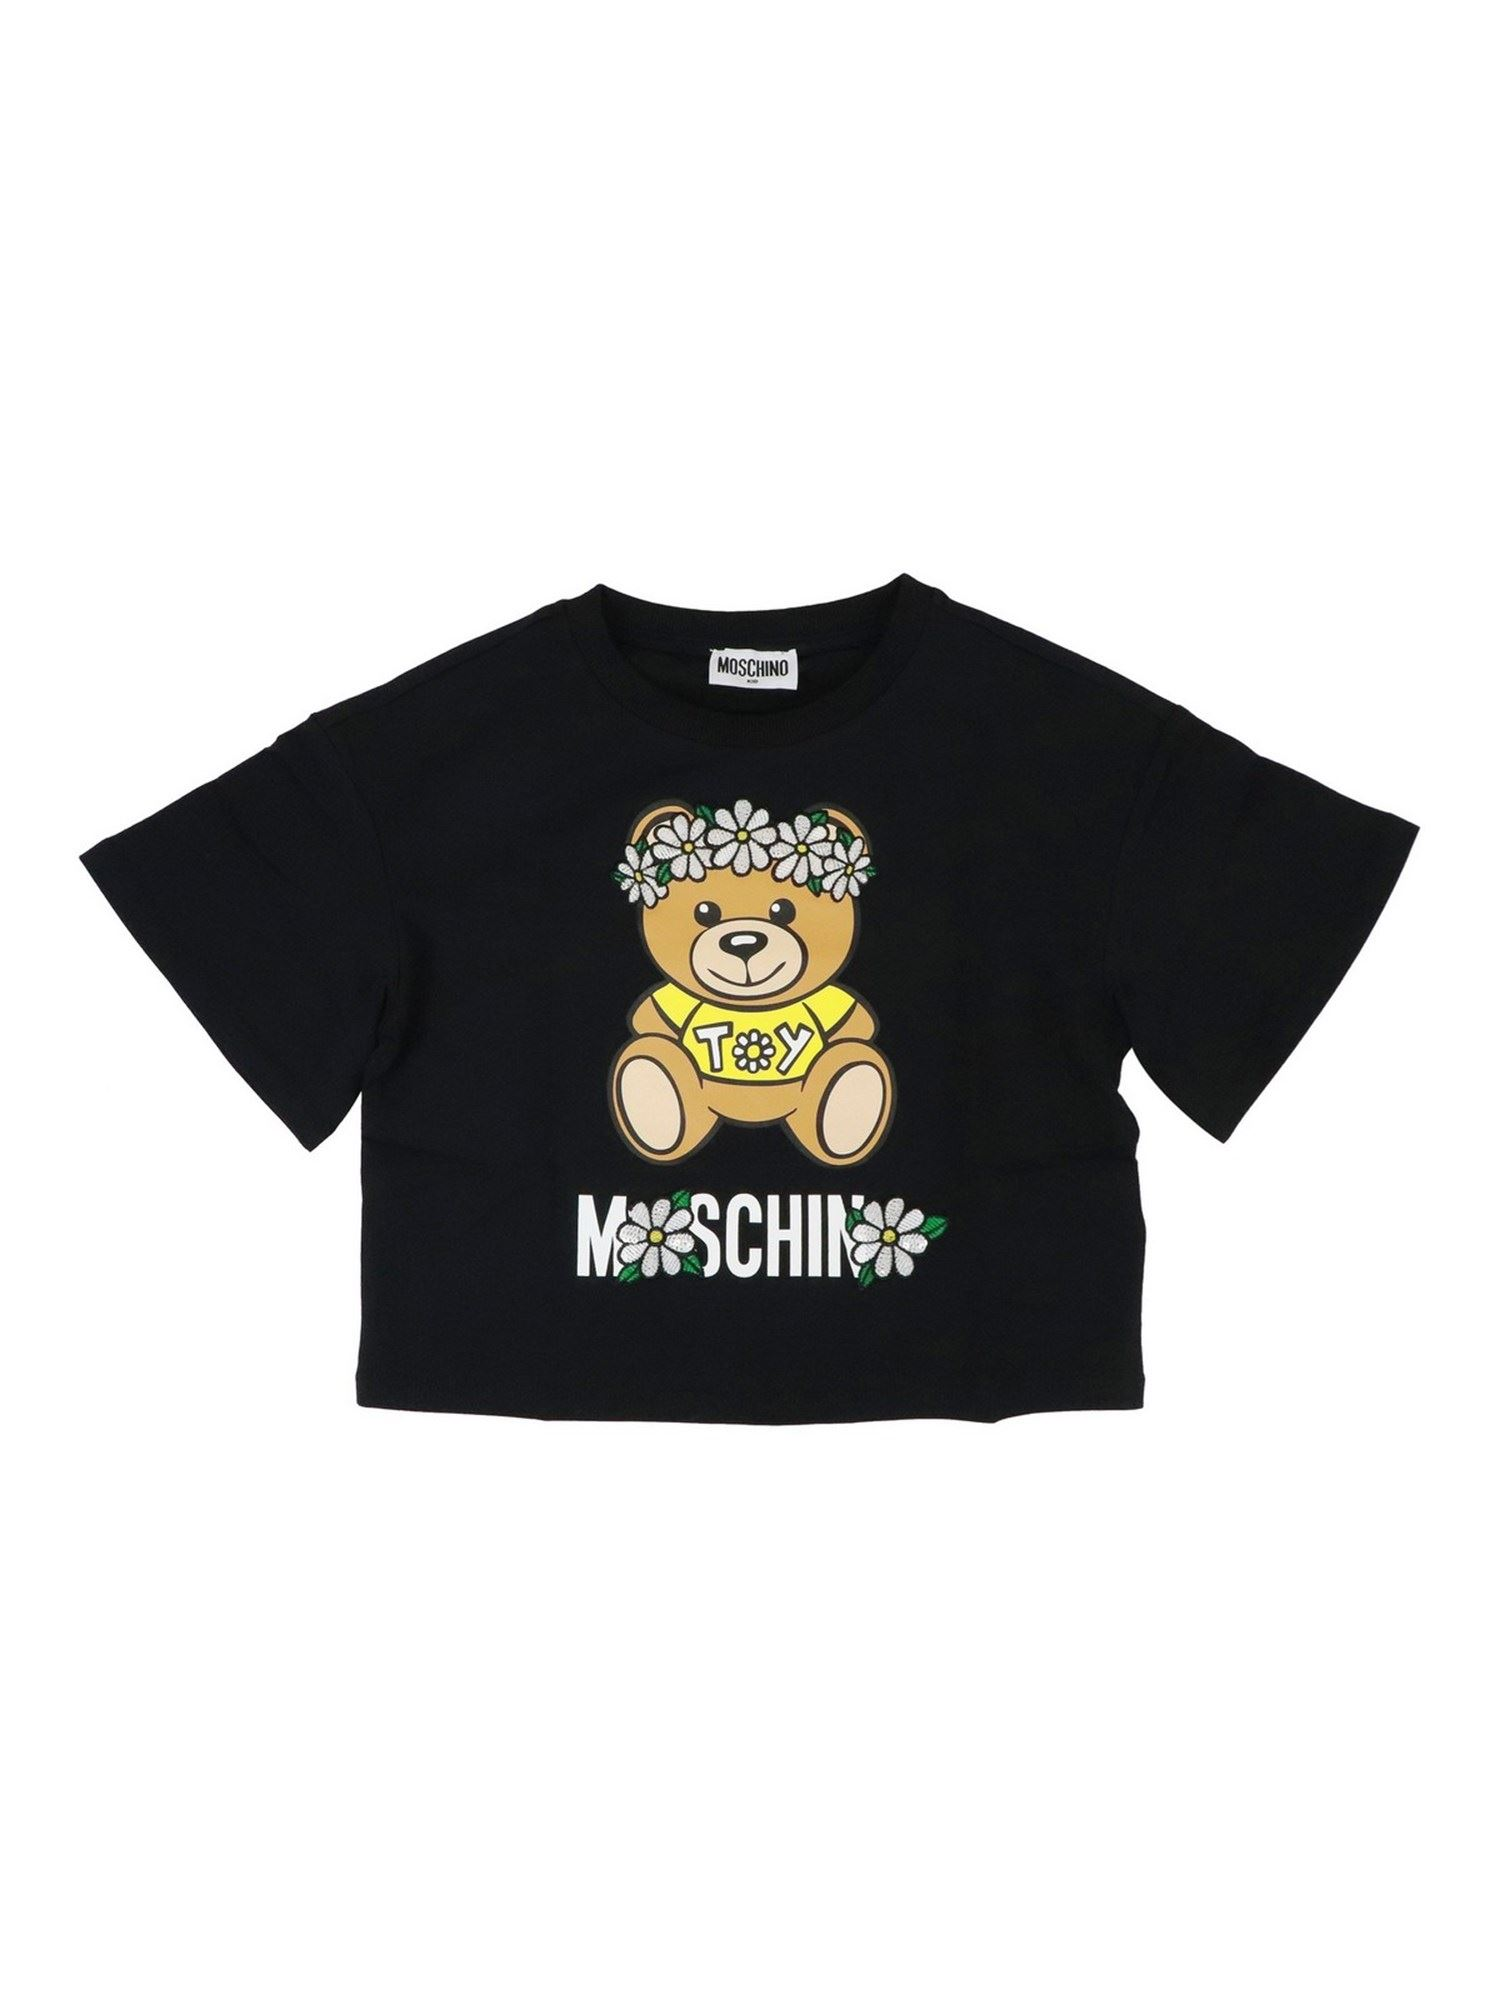 Moschino Kids' Daisy Teddy Bear T-shirt In Black